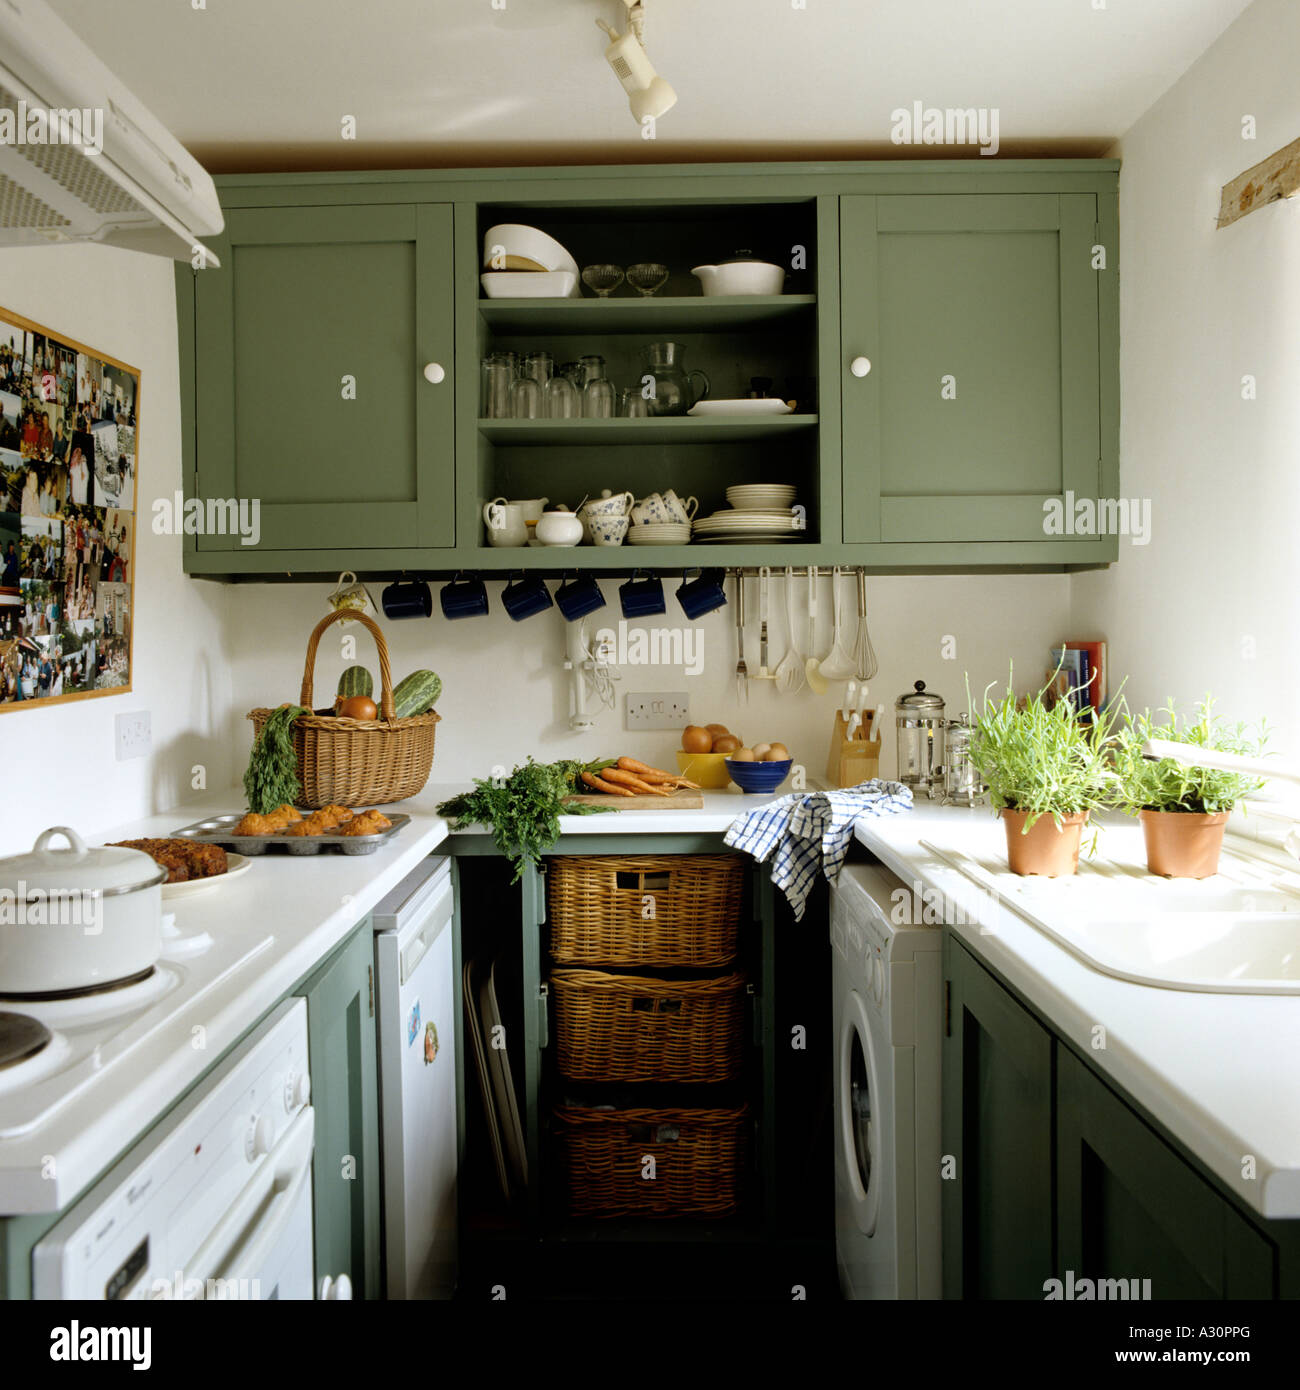 Cottage Galley Kitchen: Green Painted Cupboard In Galley Kitchen, In English Country Cottage Stock Photo: 10632423